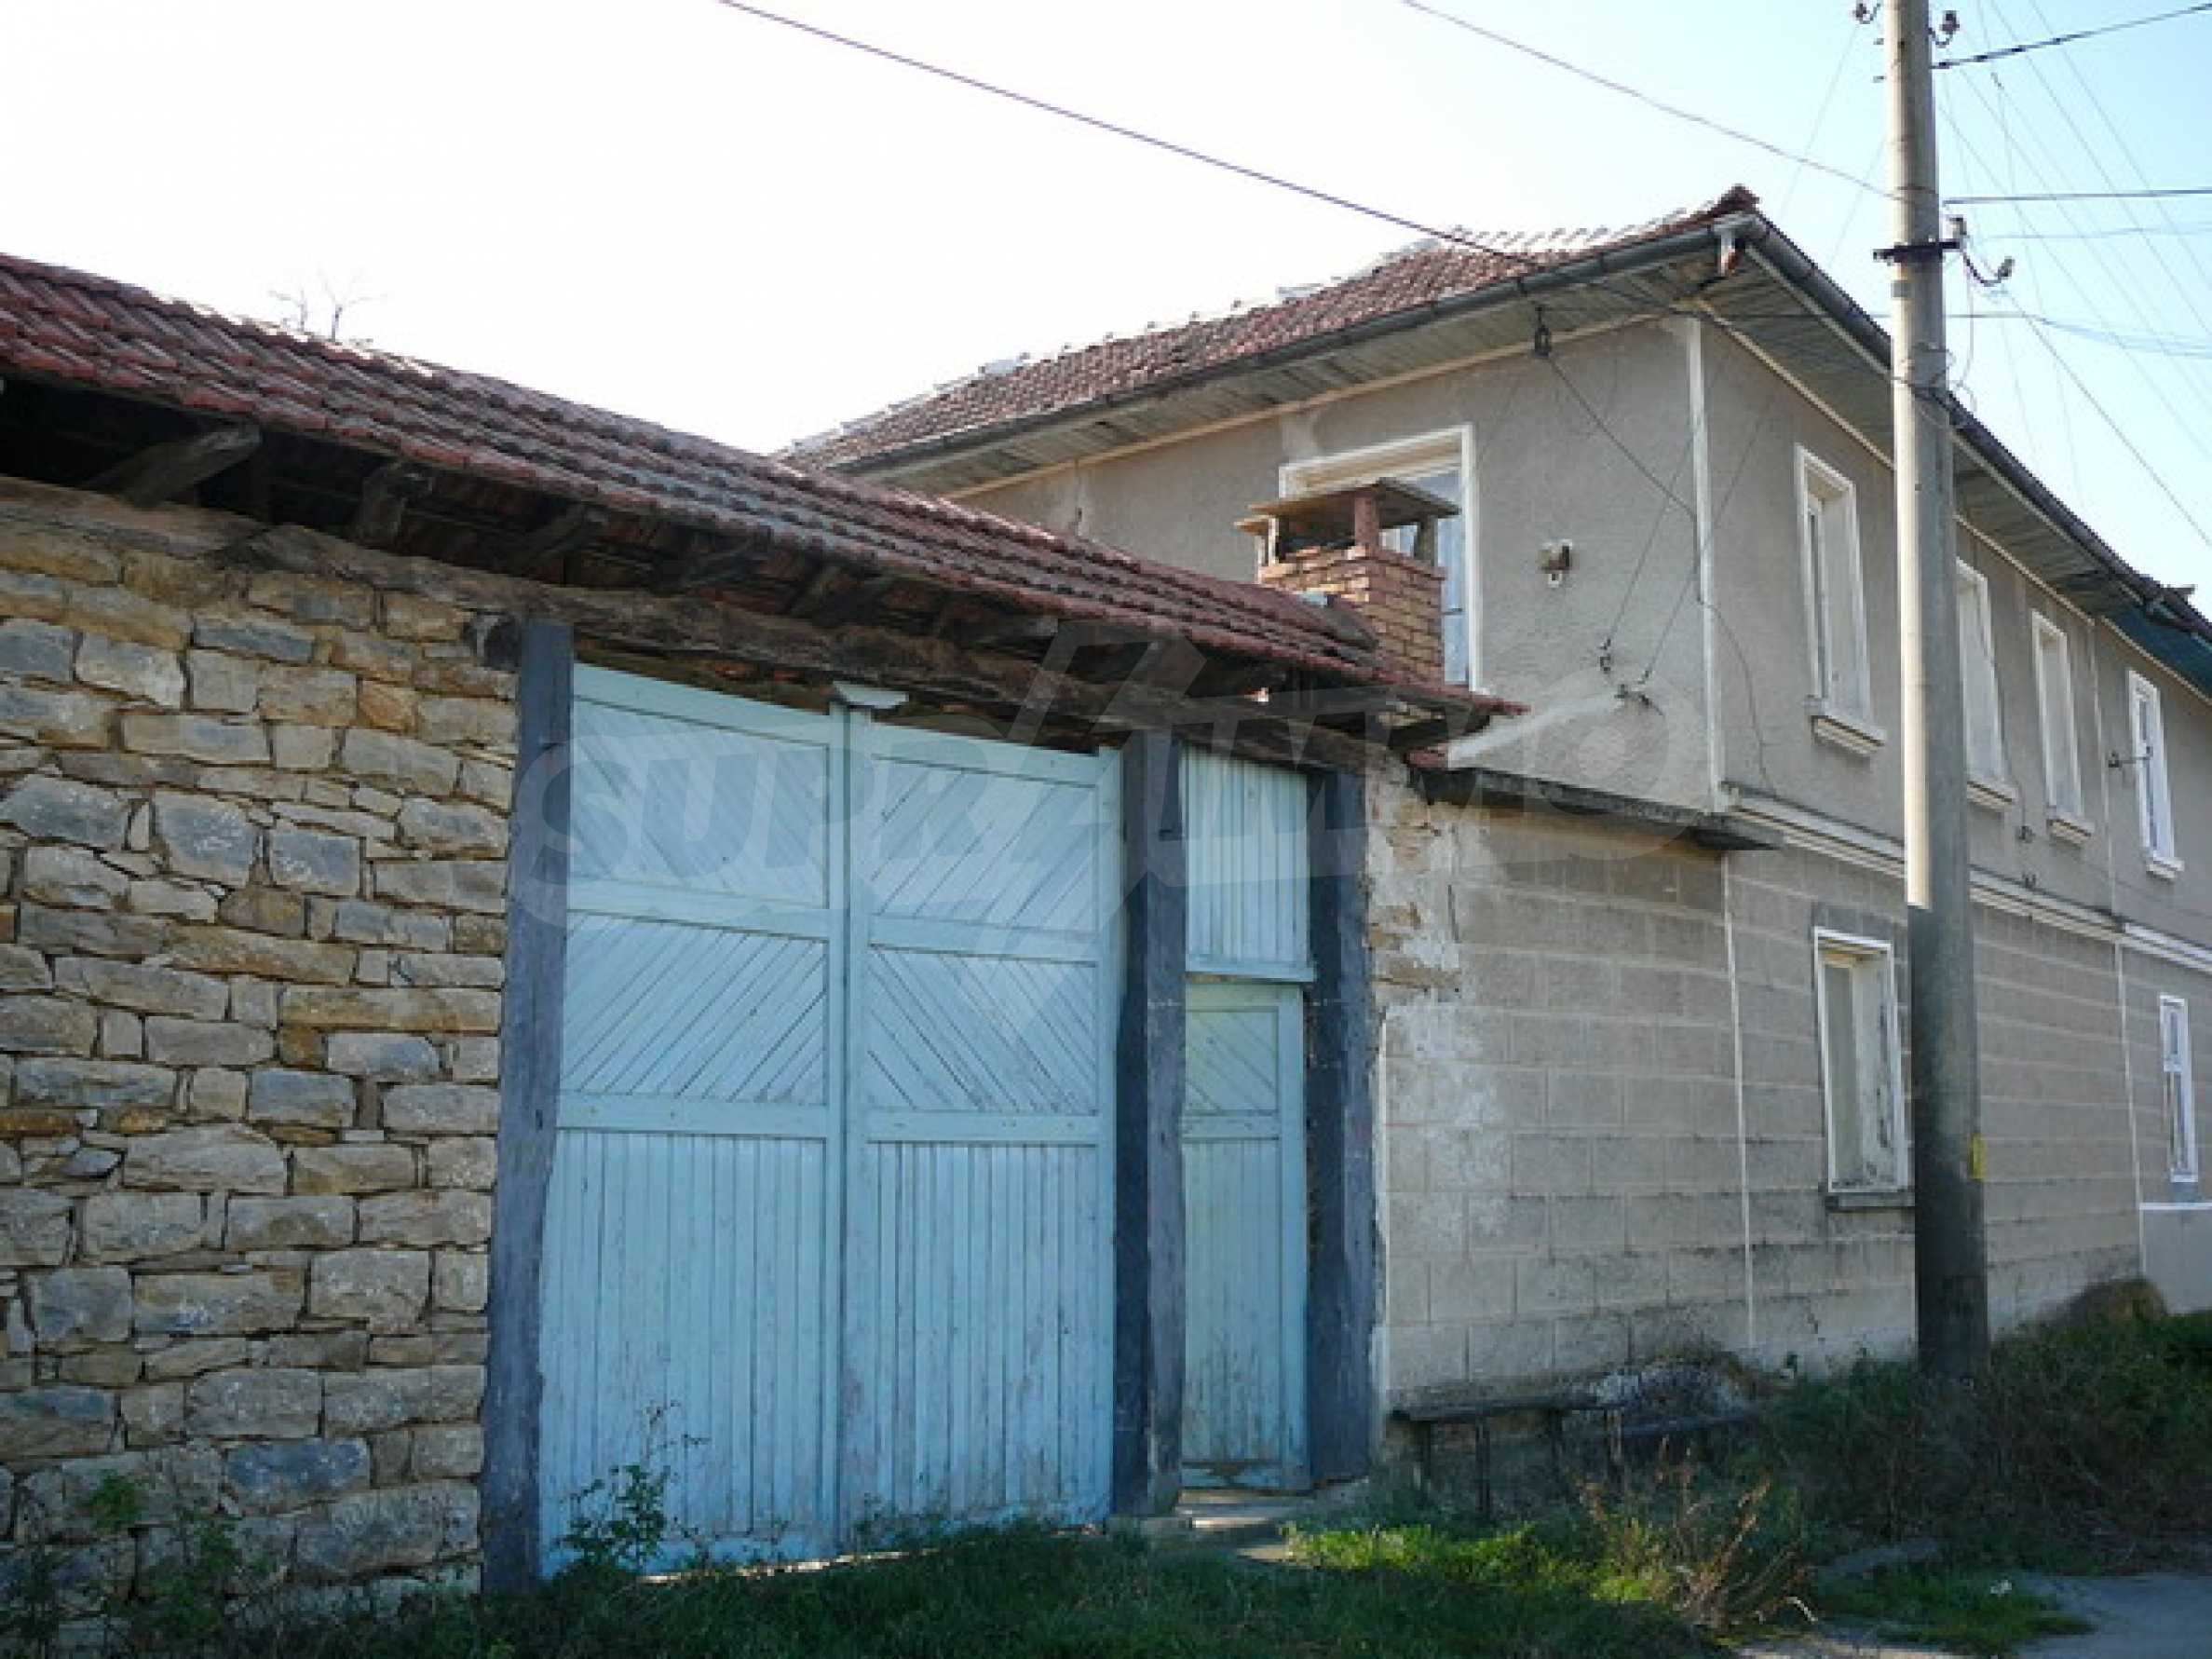 House for sale in a village close to Veliko Tarnovo 5